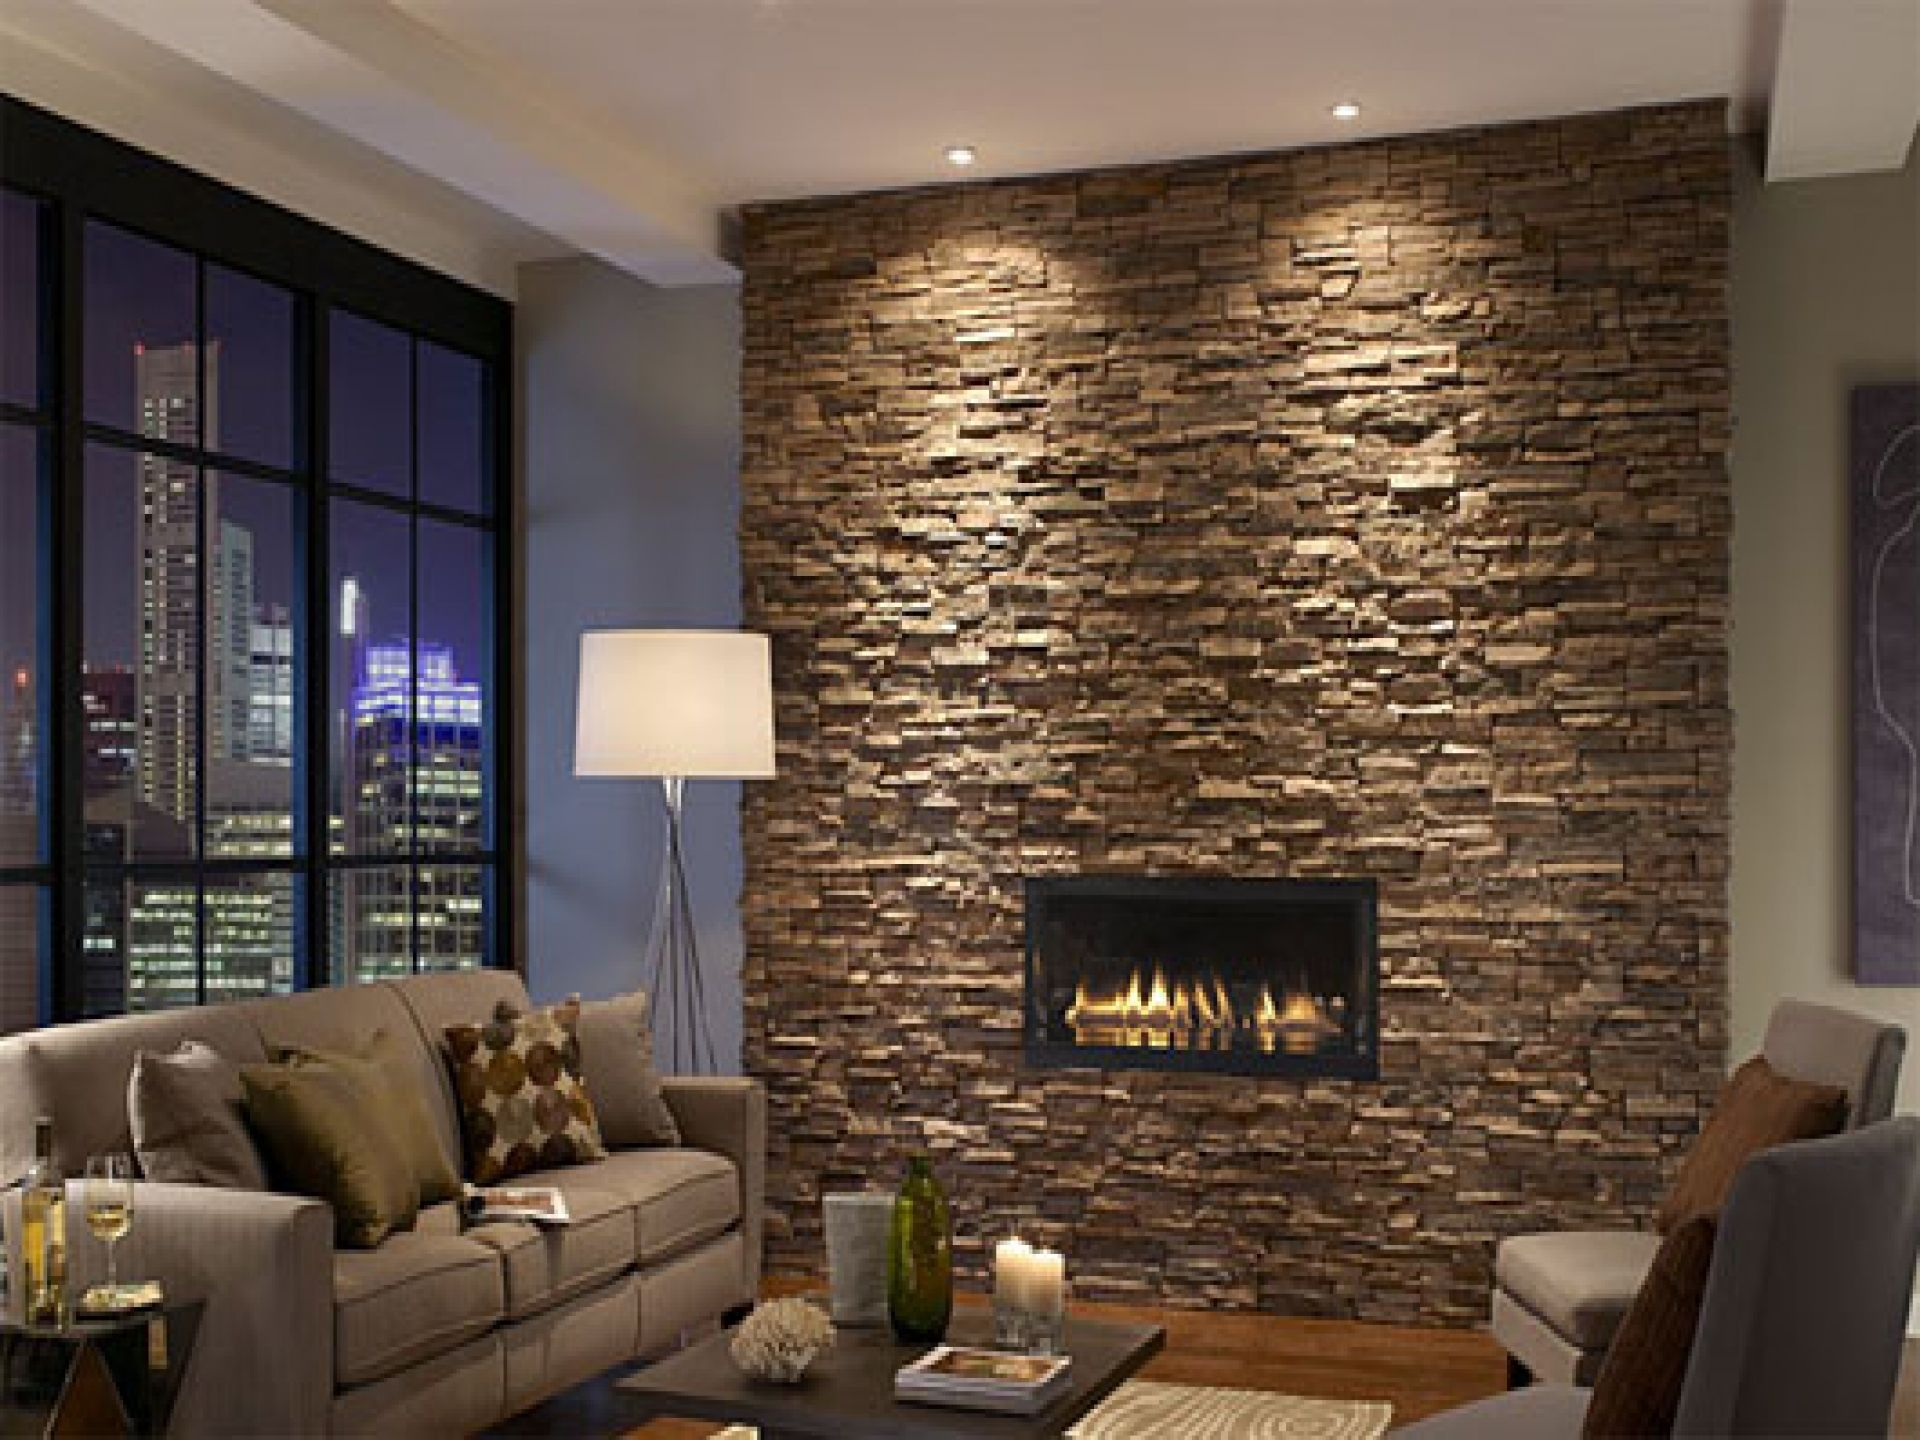 If You Liked About Unique Rock Interior Walls In Interior Stone Wall Panels  And Fireplace You Can Share With Friends And Family.